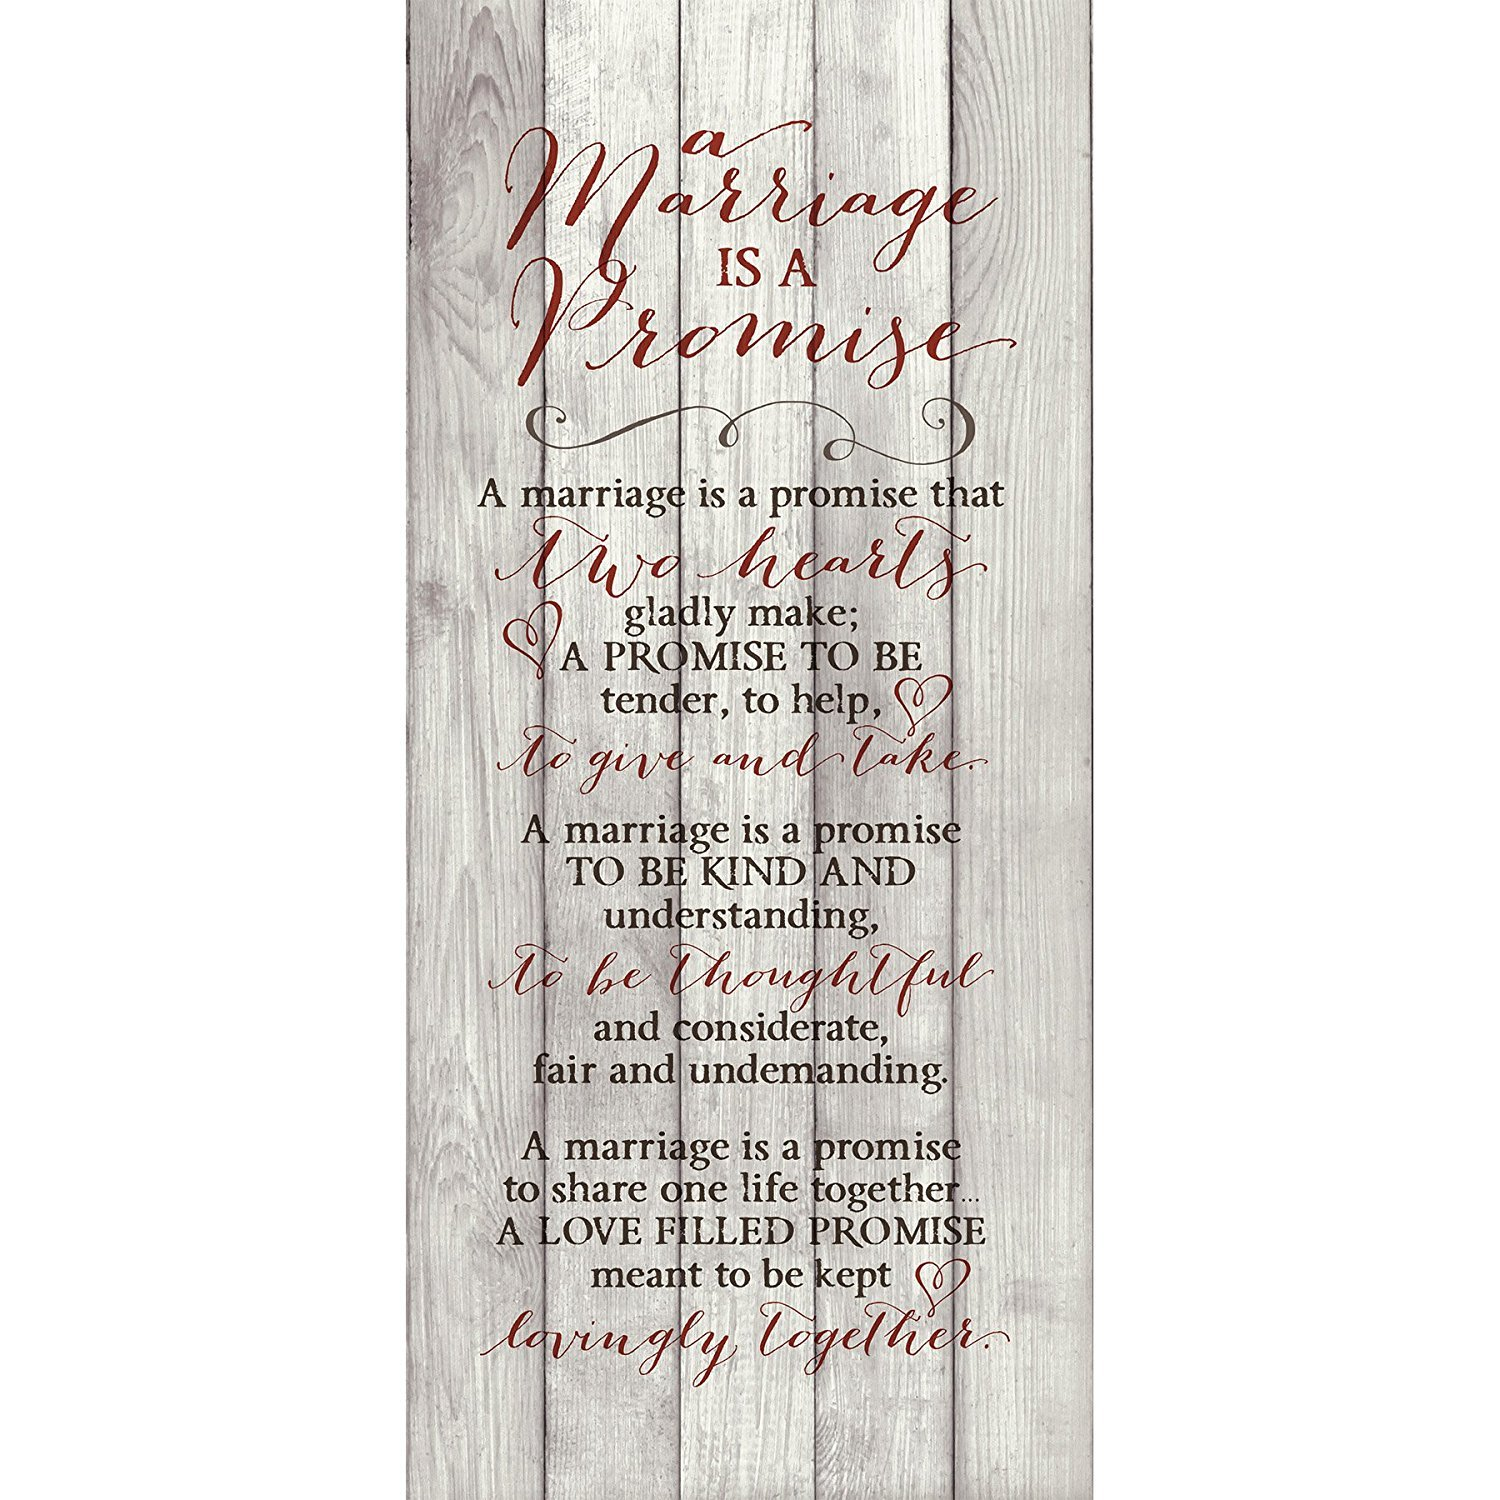 A Marriage Is A Promise 6 x 9 Wood Plank Look Wall Art Plaque Dexsa DX8800